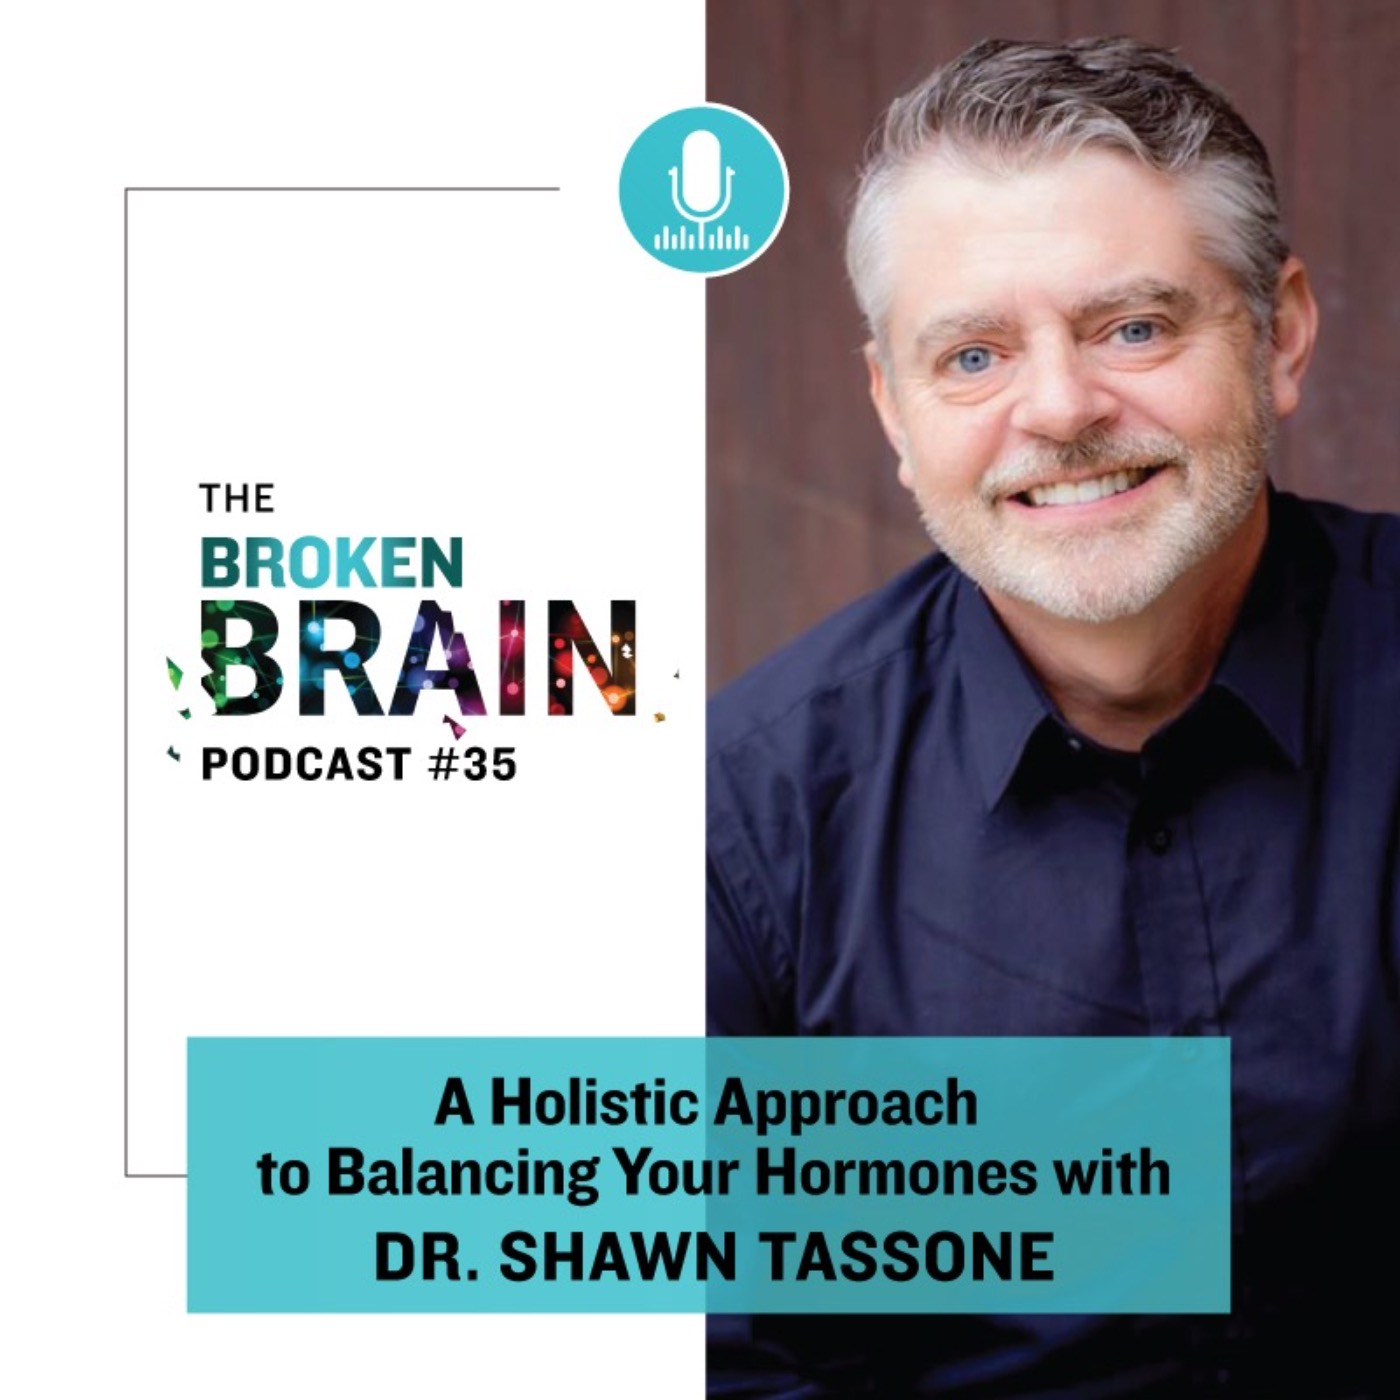 #35: A Holistic Approach to Balancing Your Hormones with Dr. Shawn Tassone